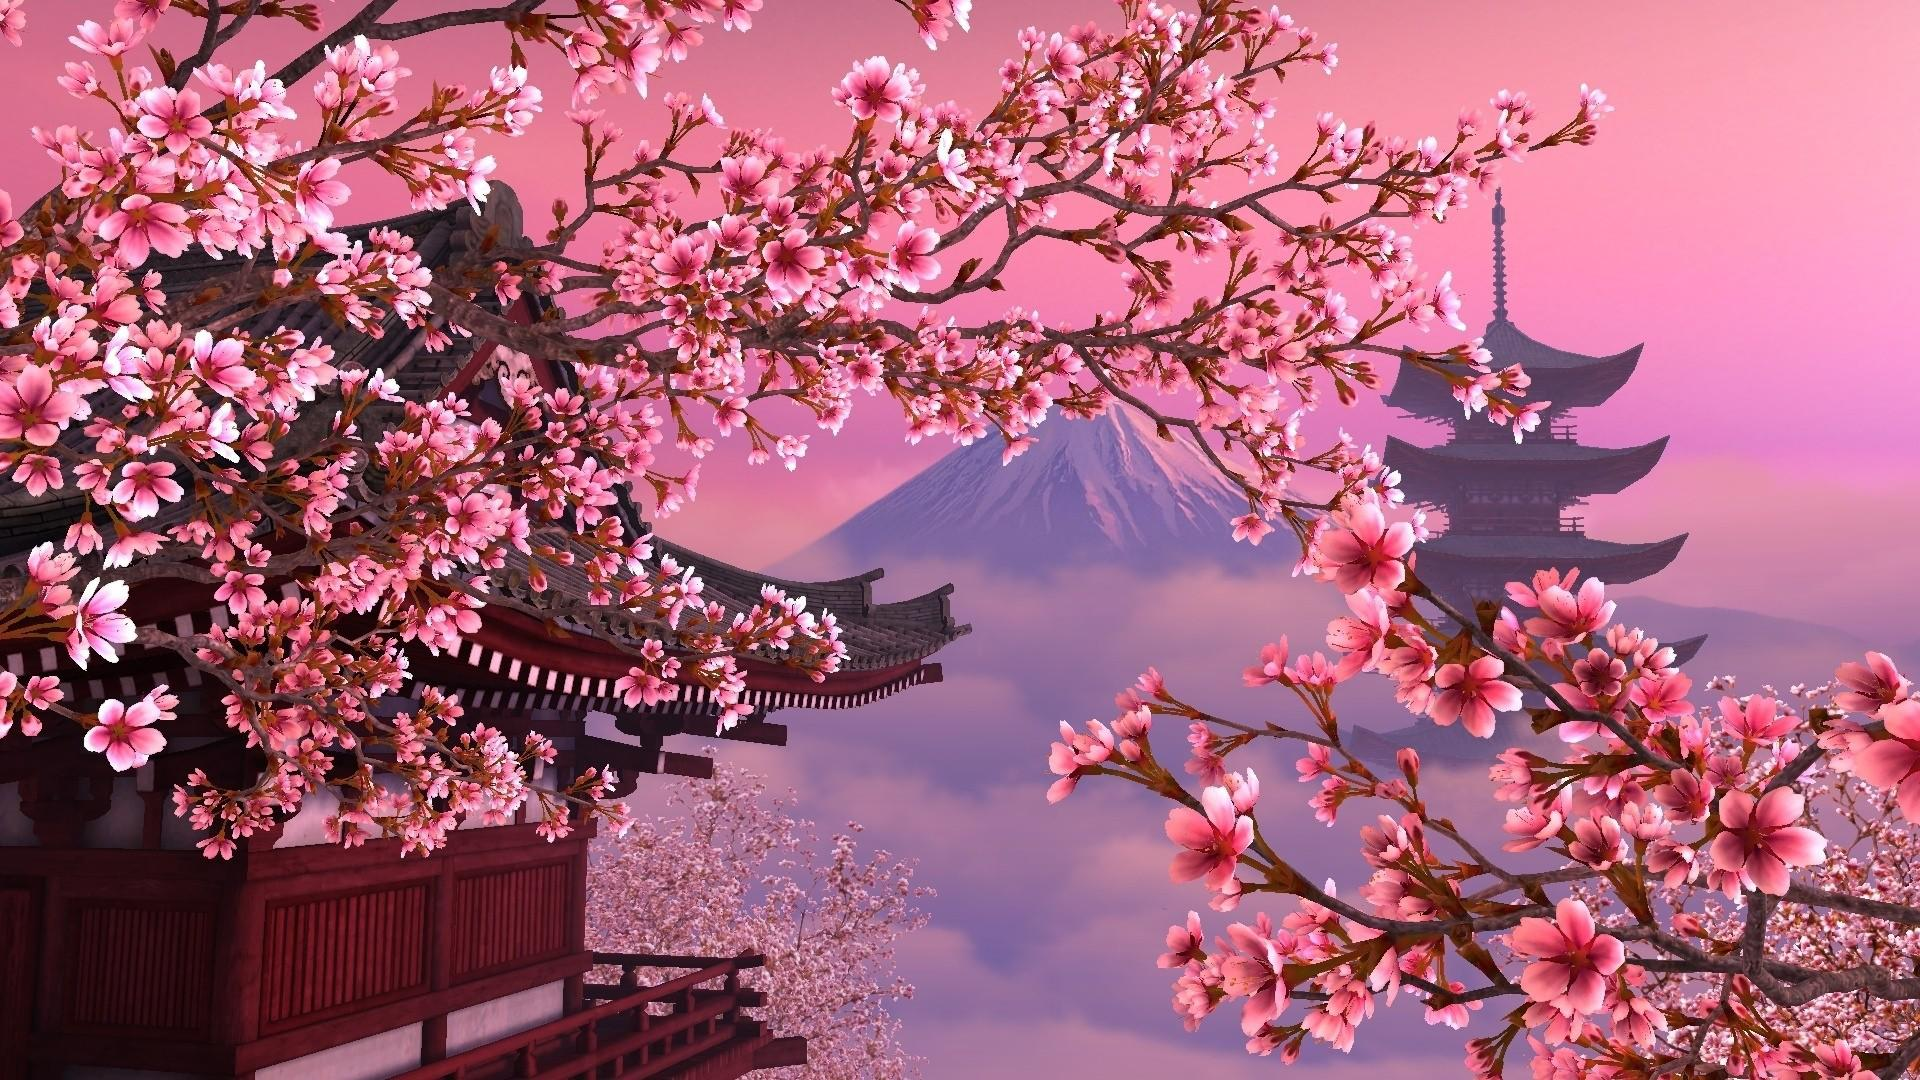 Download Sakura Tree Wallpaper  Free Wallpaper For